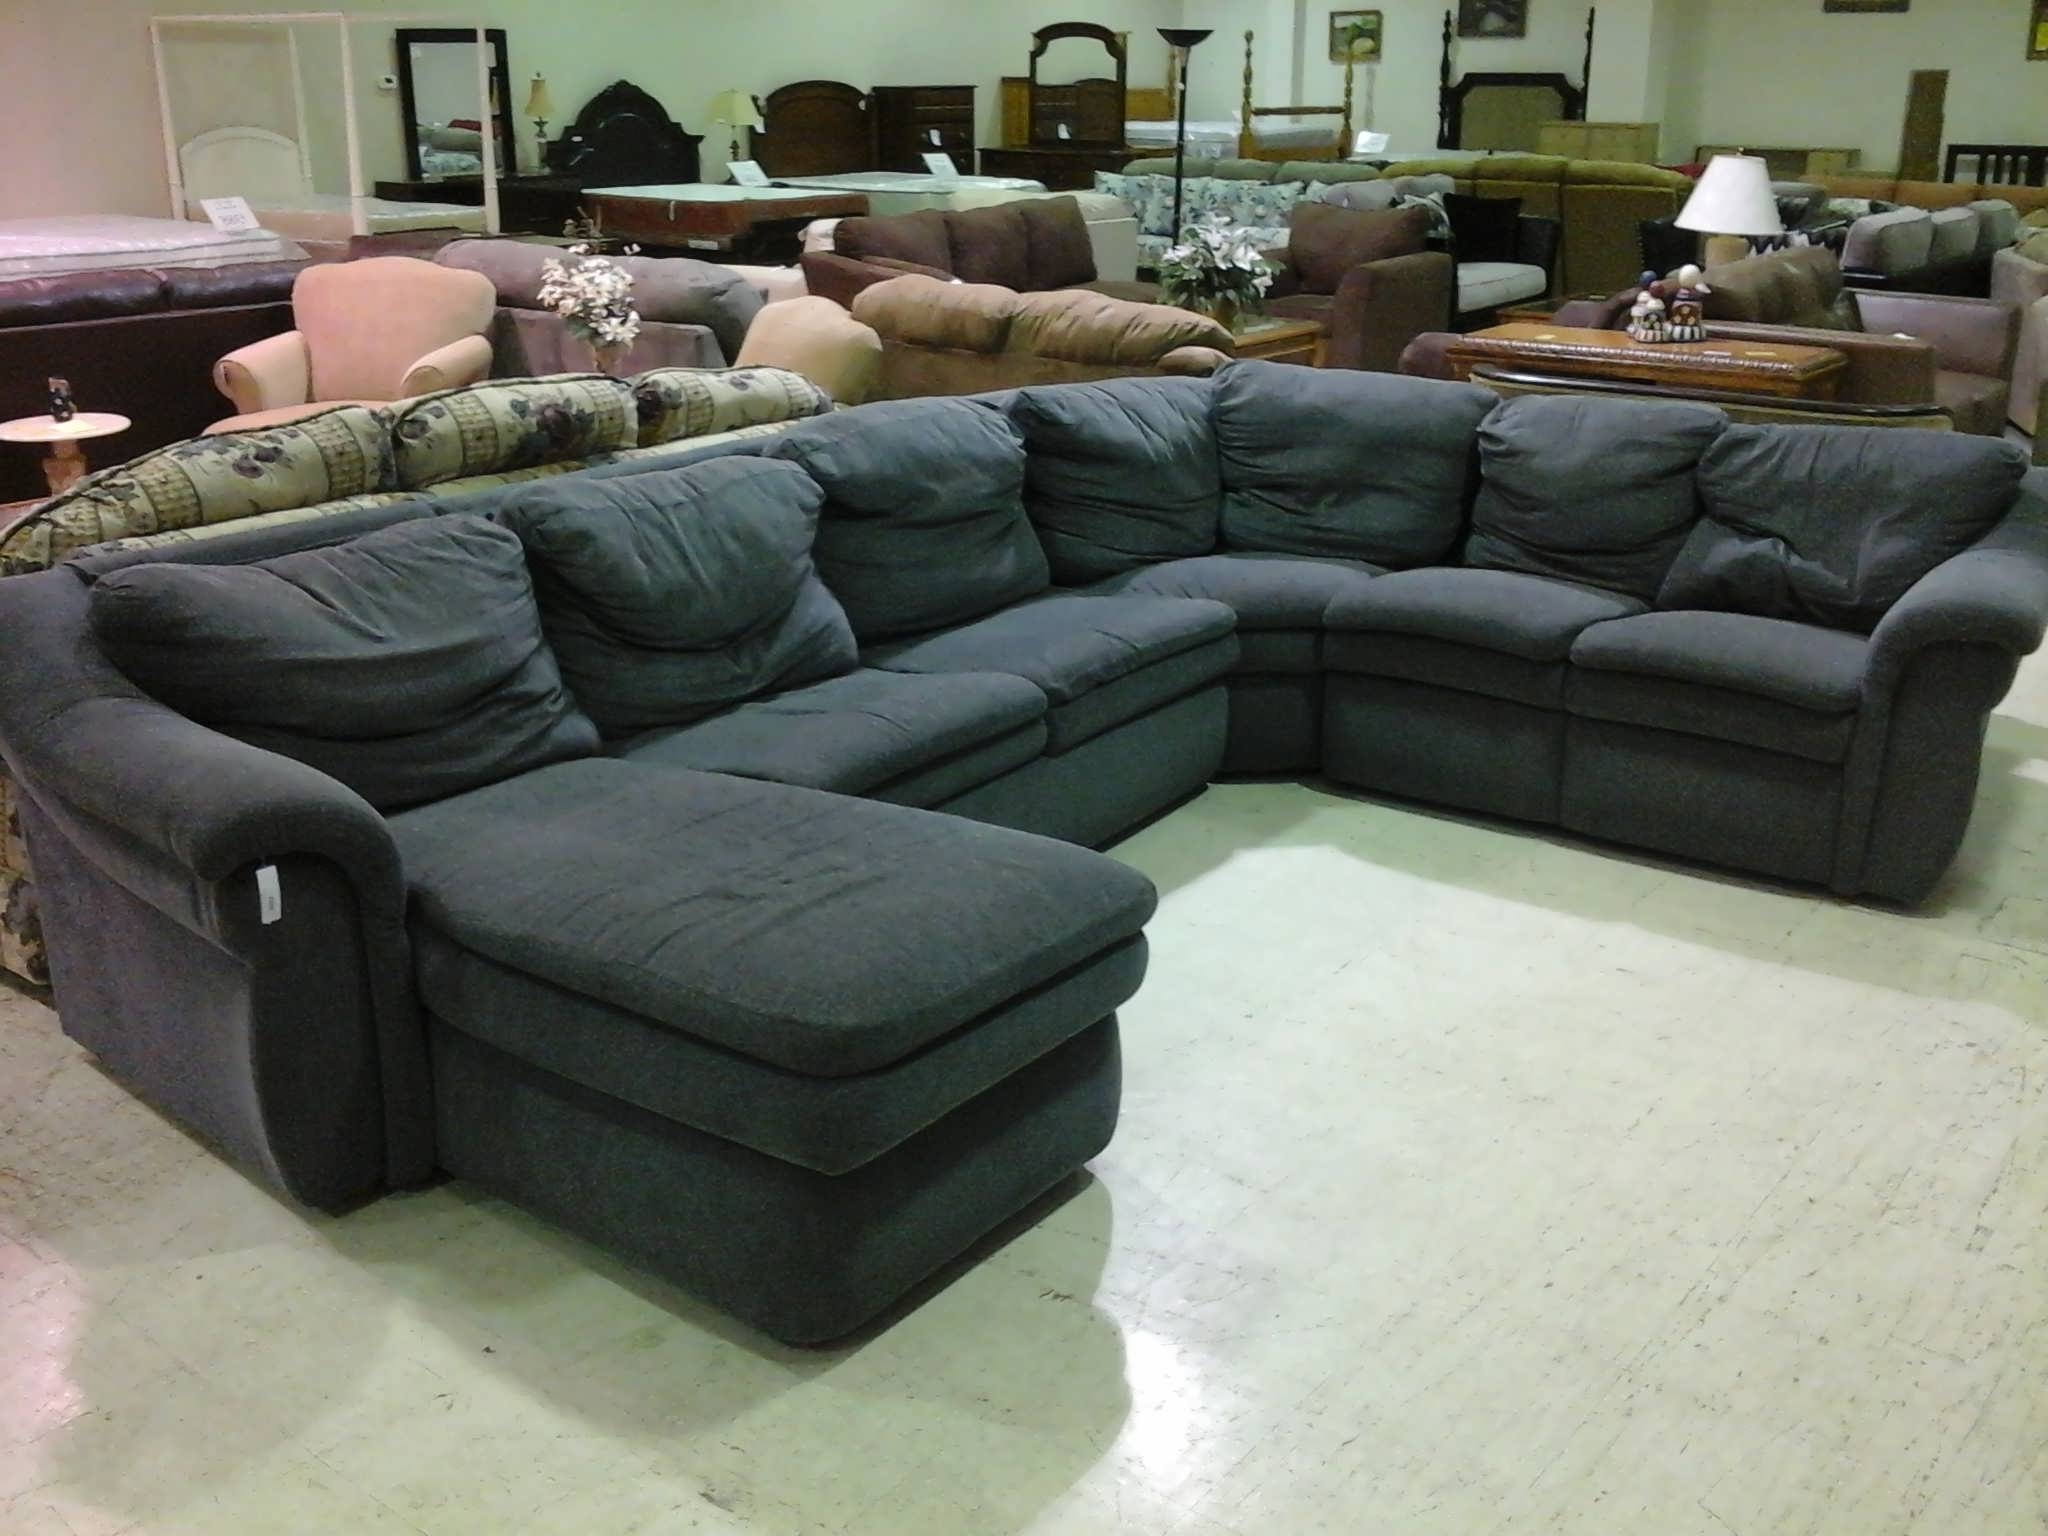 Trendy Sofa : Large Sectional Grey Leather Sectional Couch With Chaise With Regard To Leather Sectional Sleeper Sofas With Chaise (View 14 of 15)